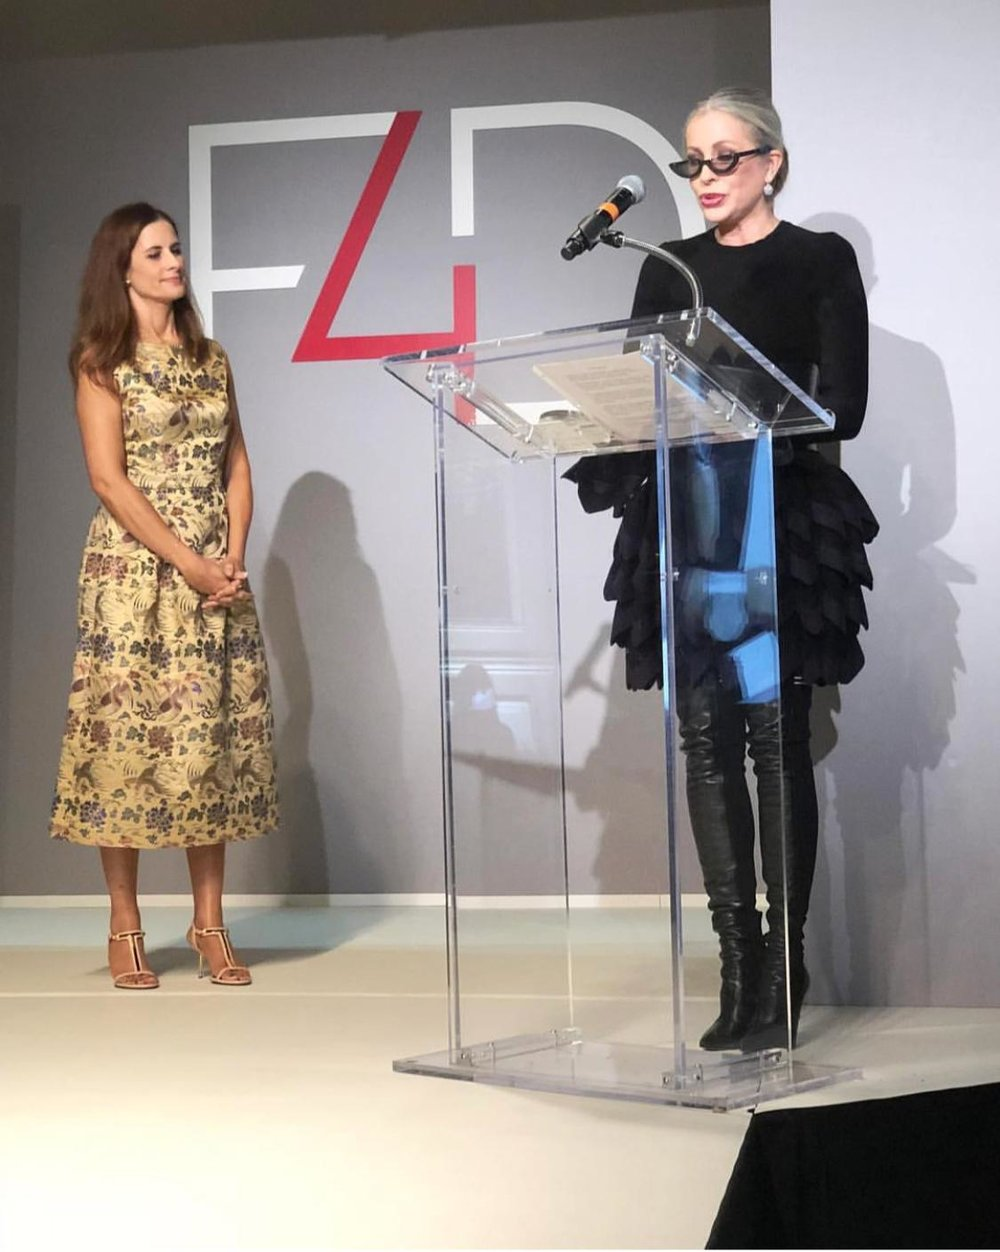 Carmen delivering her award acceptance speech at yesterday's Fashion 4 Development Luncheon in NYC.